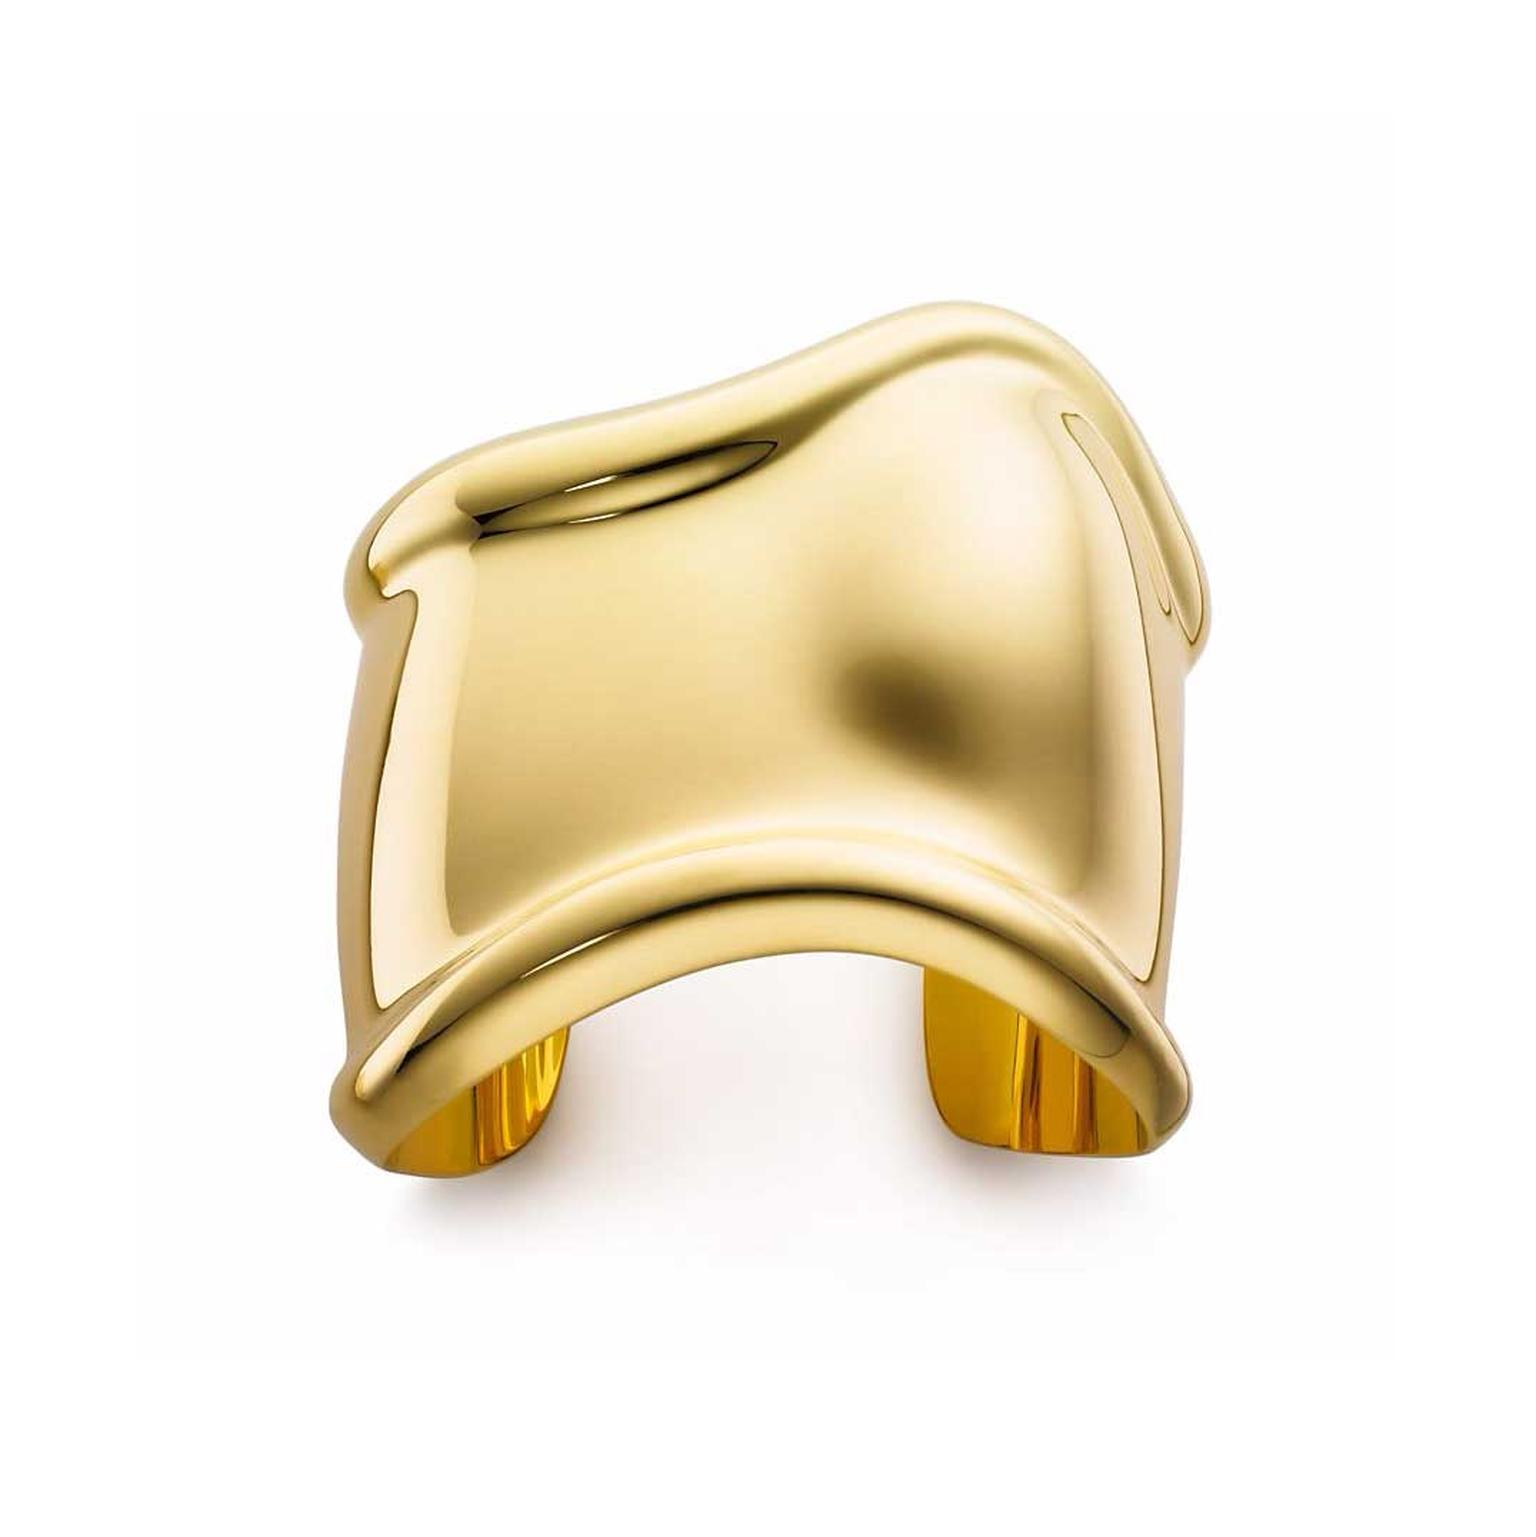 Elsa Peretti for Tiffany yellow gold Bone cuff